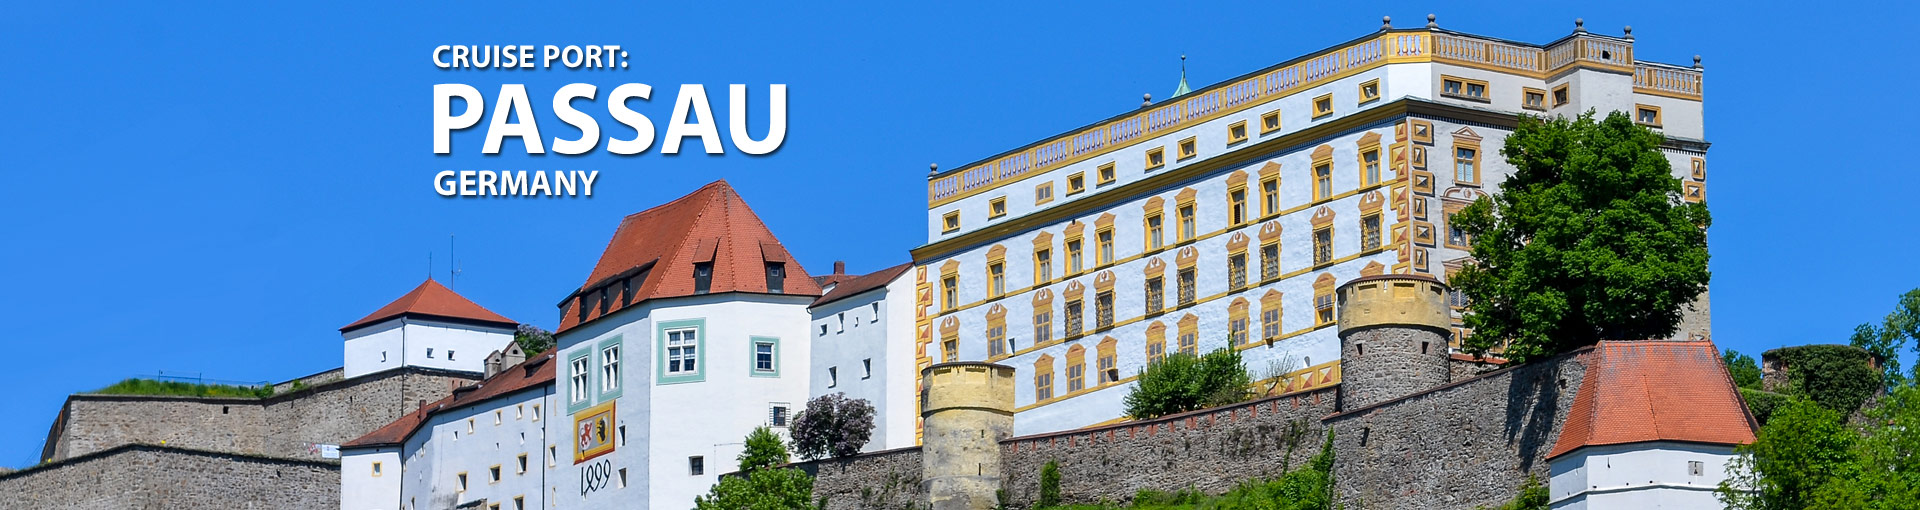 Cruises from Passau, Germany